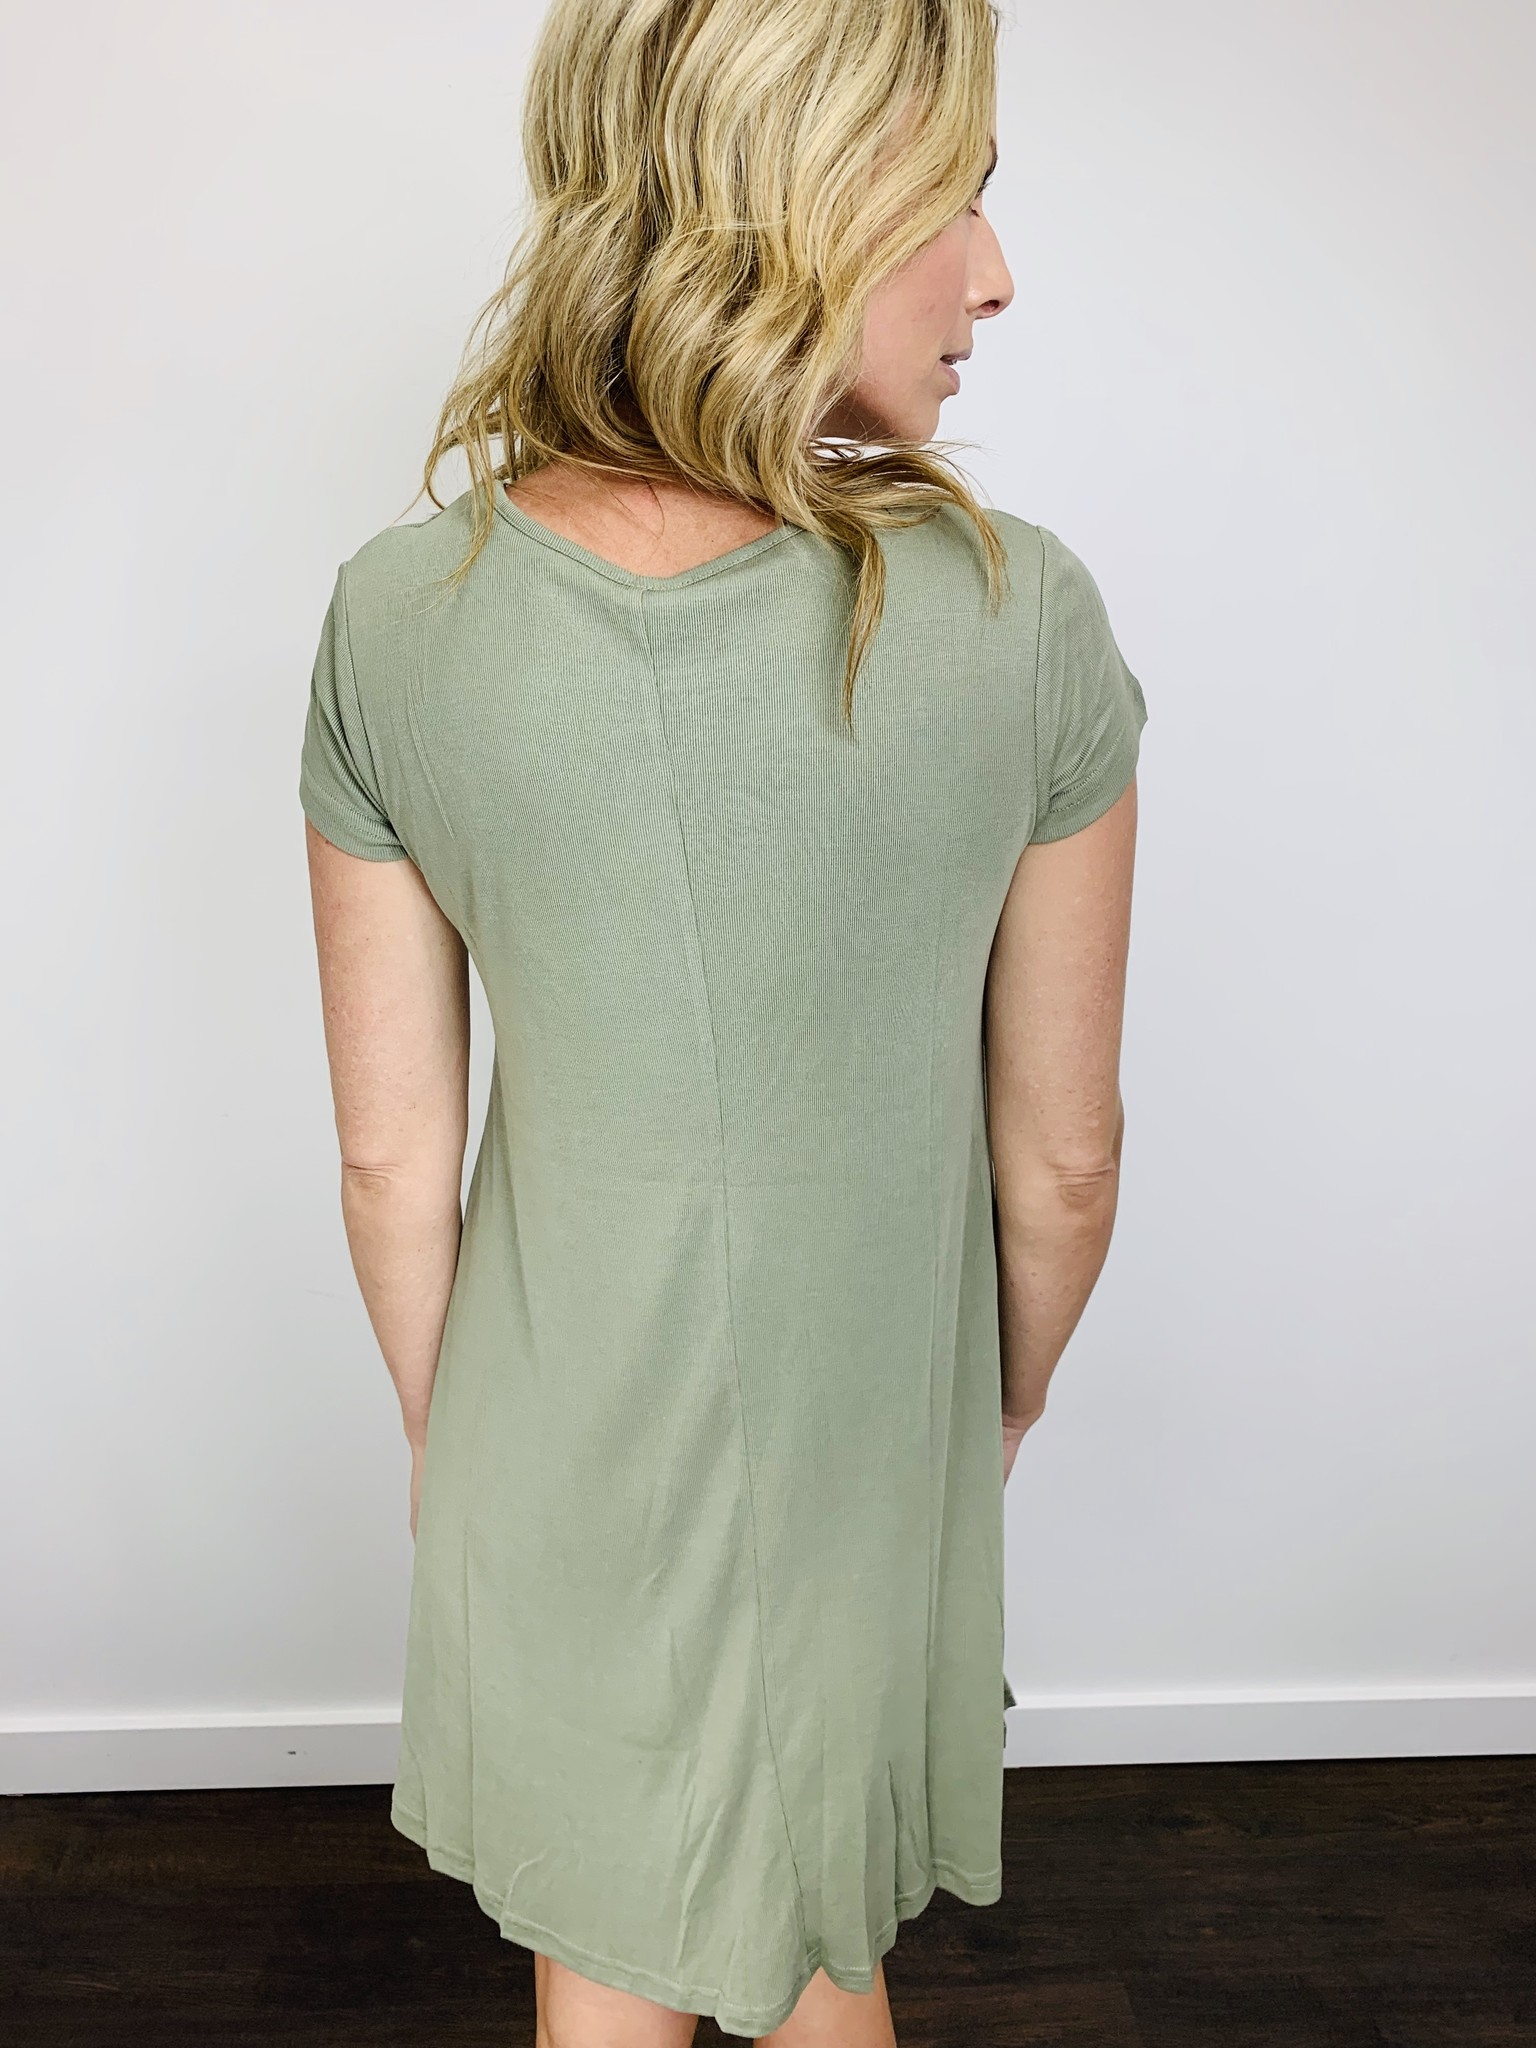 Orb Jules T-Shirt Dress in Sage